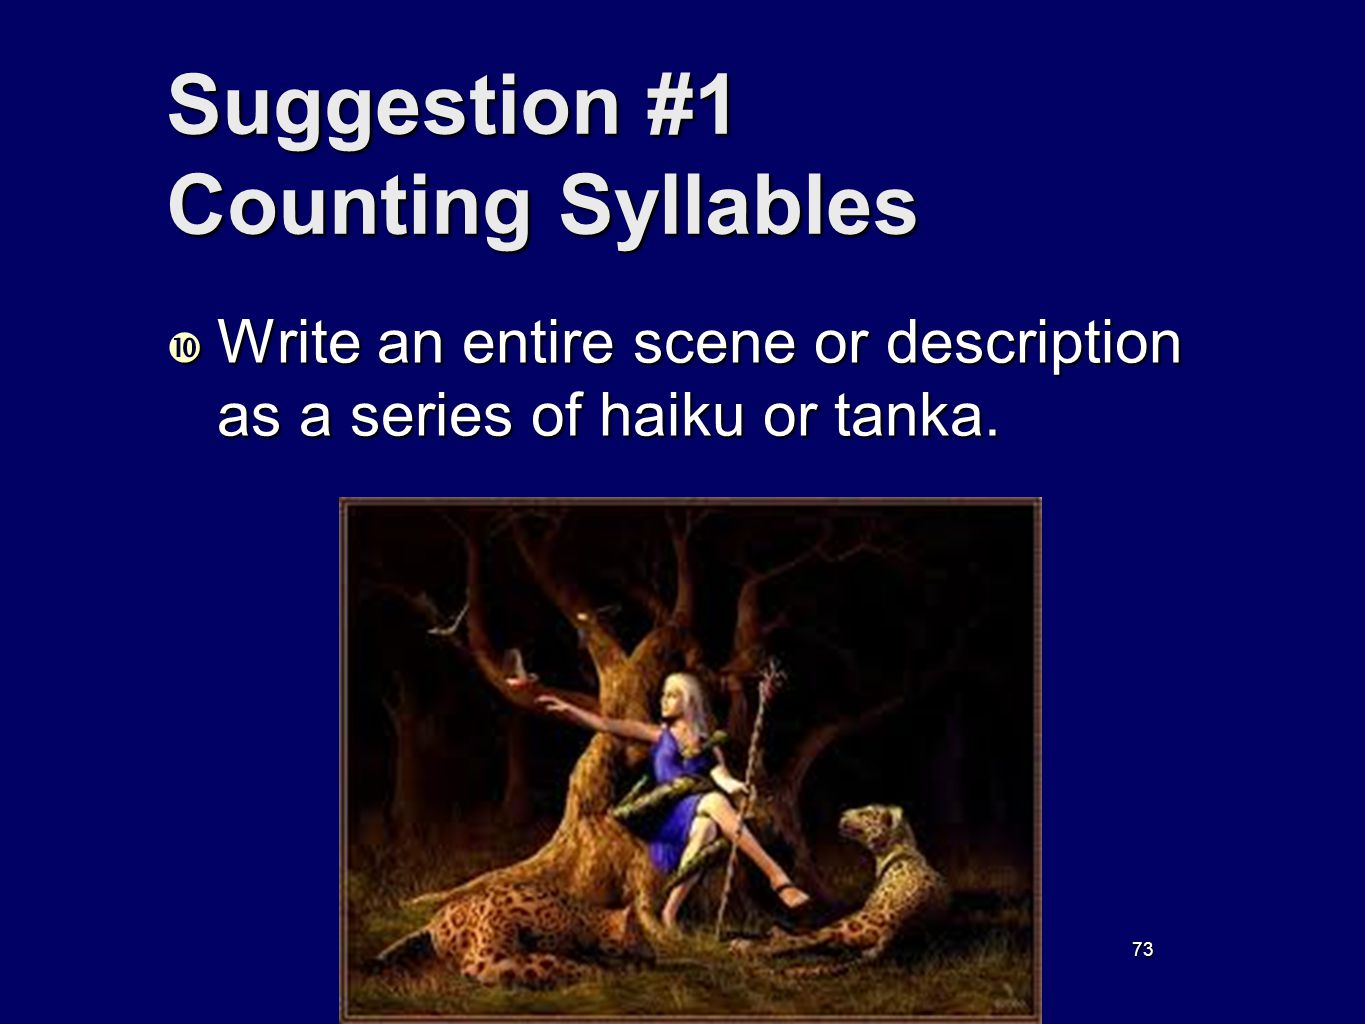 73 Suggestion #1 Counting Syllables Write an entire scene or description as a series of haiku or tanka. Write an entire scene or description as a seri